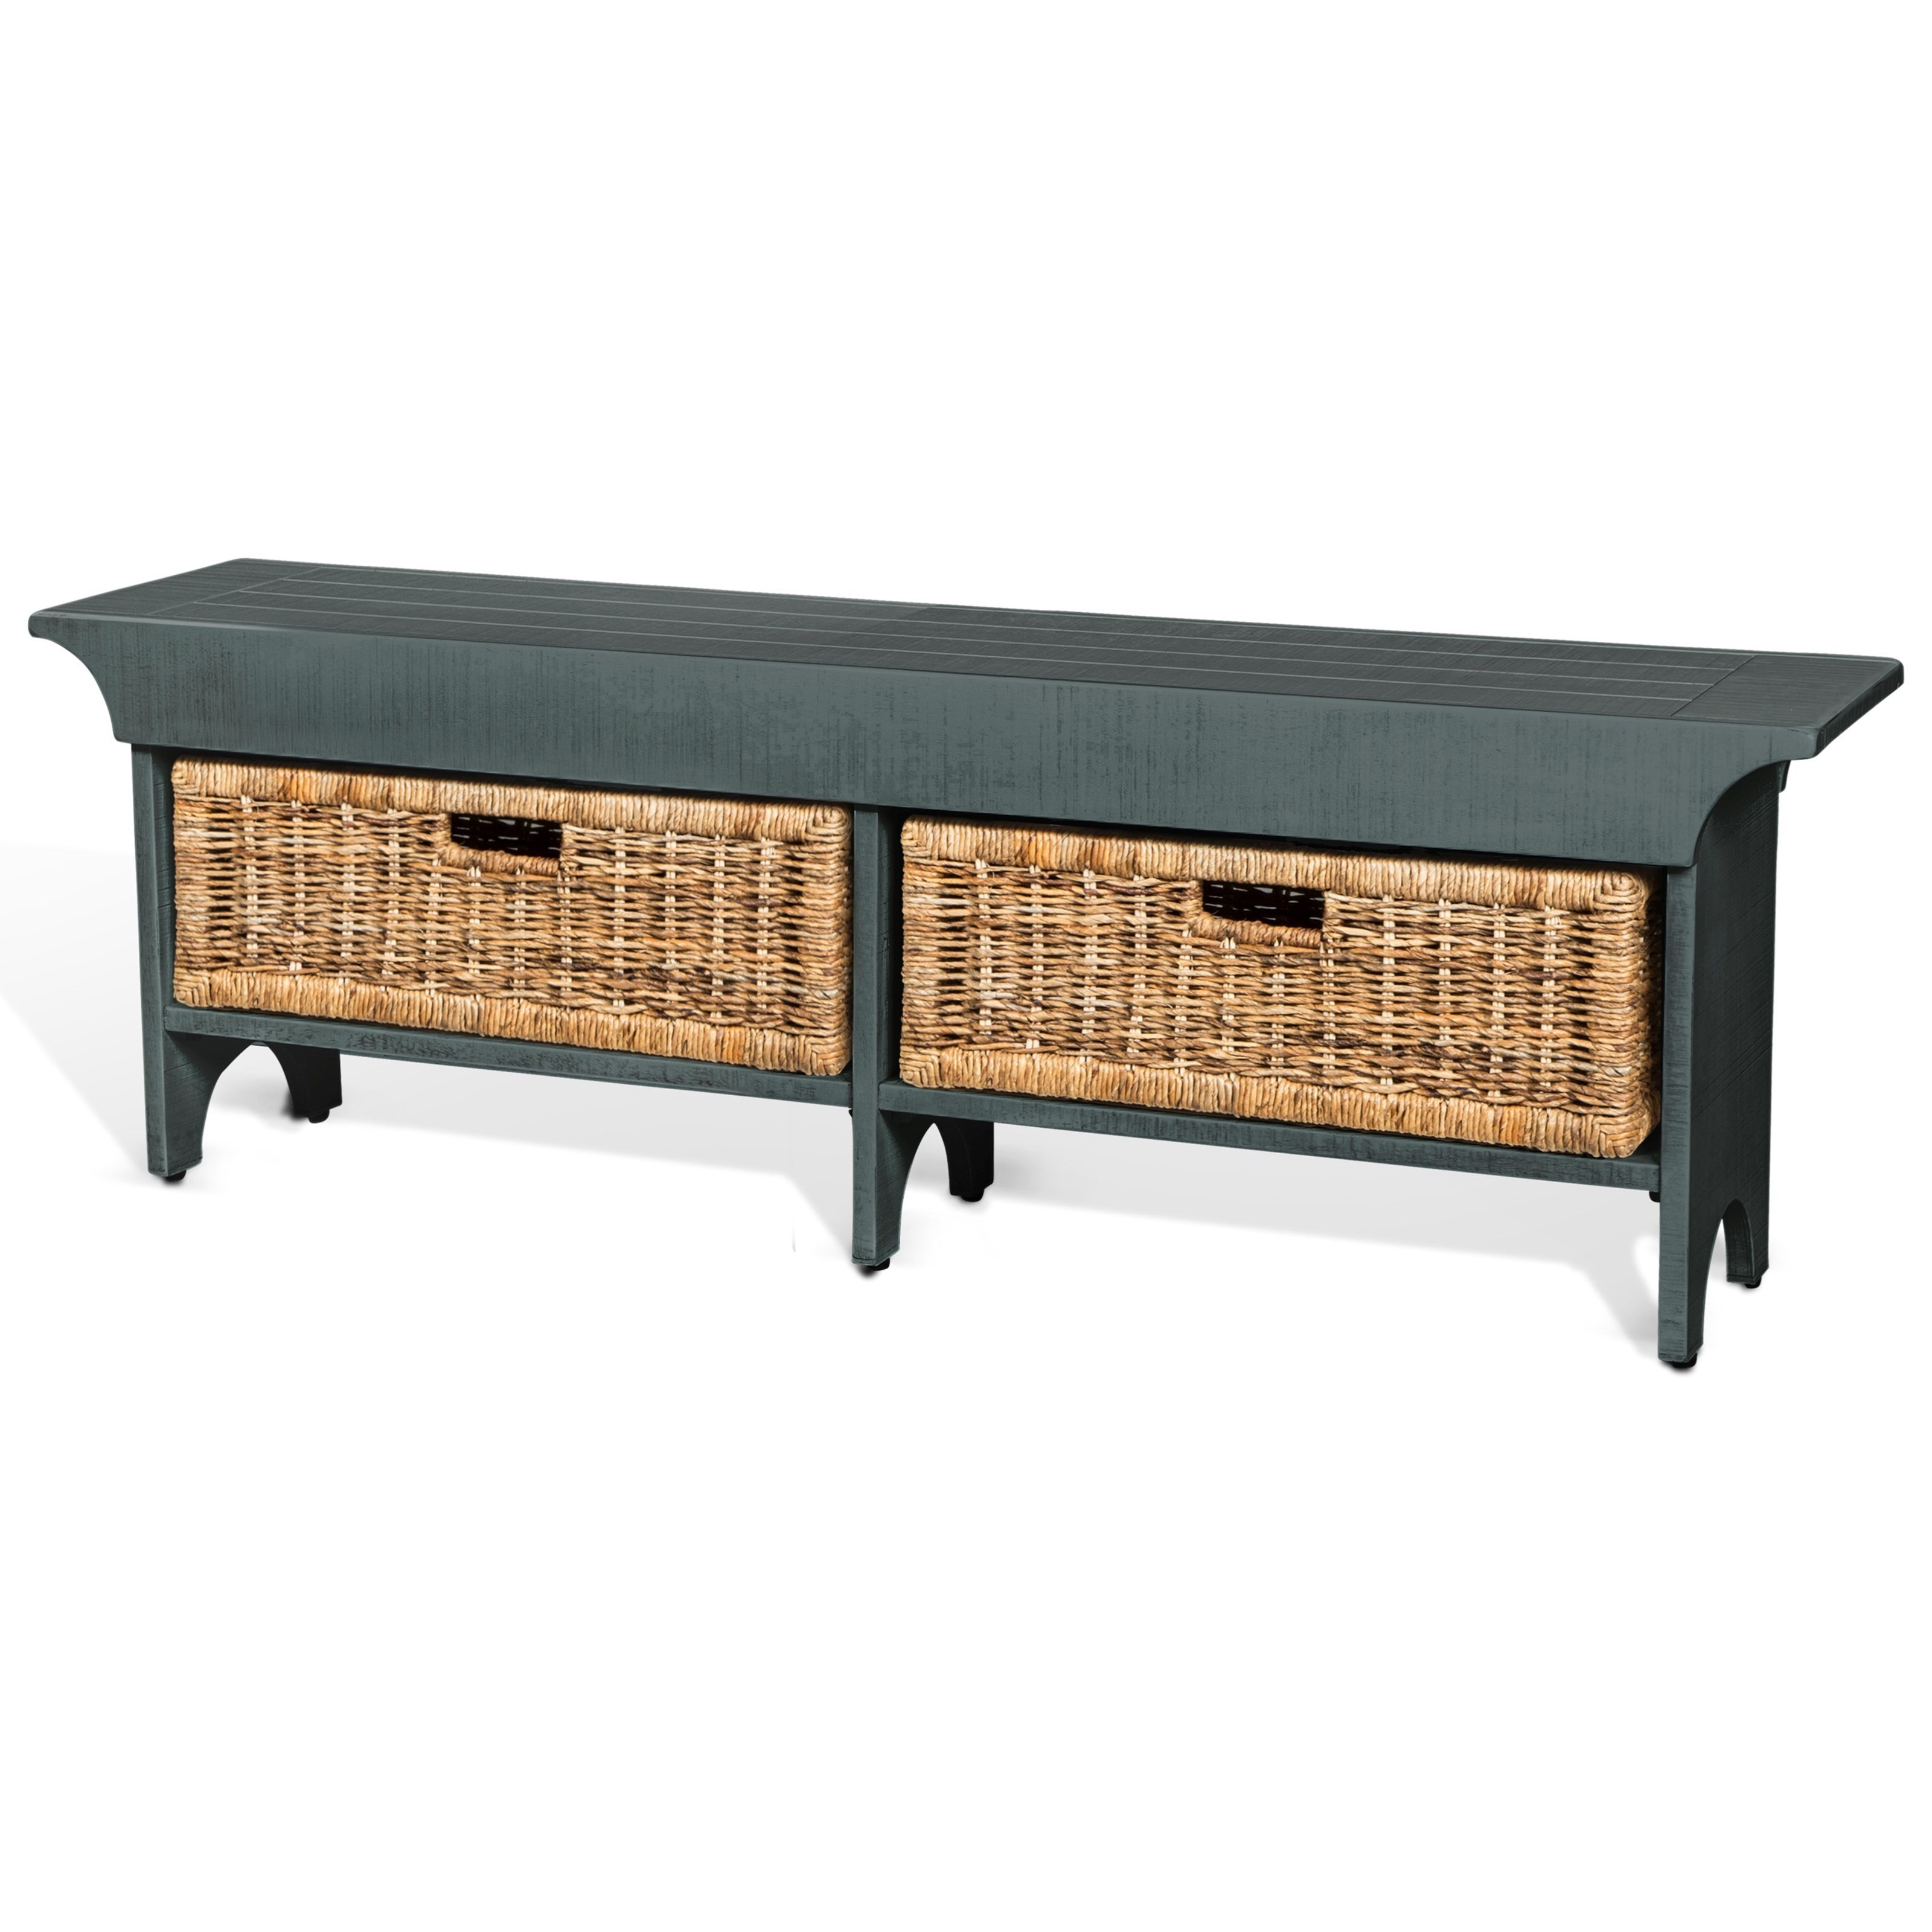 Manor House Storage Bench by Sunny Designs at Home Furnishings Direct